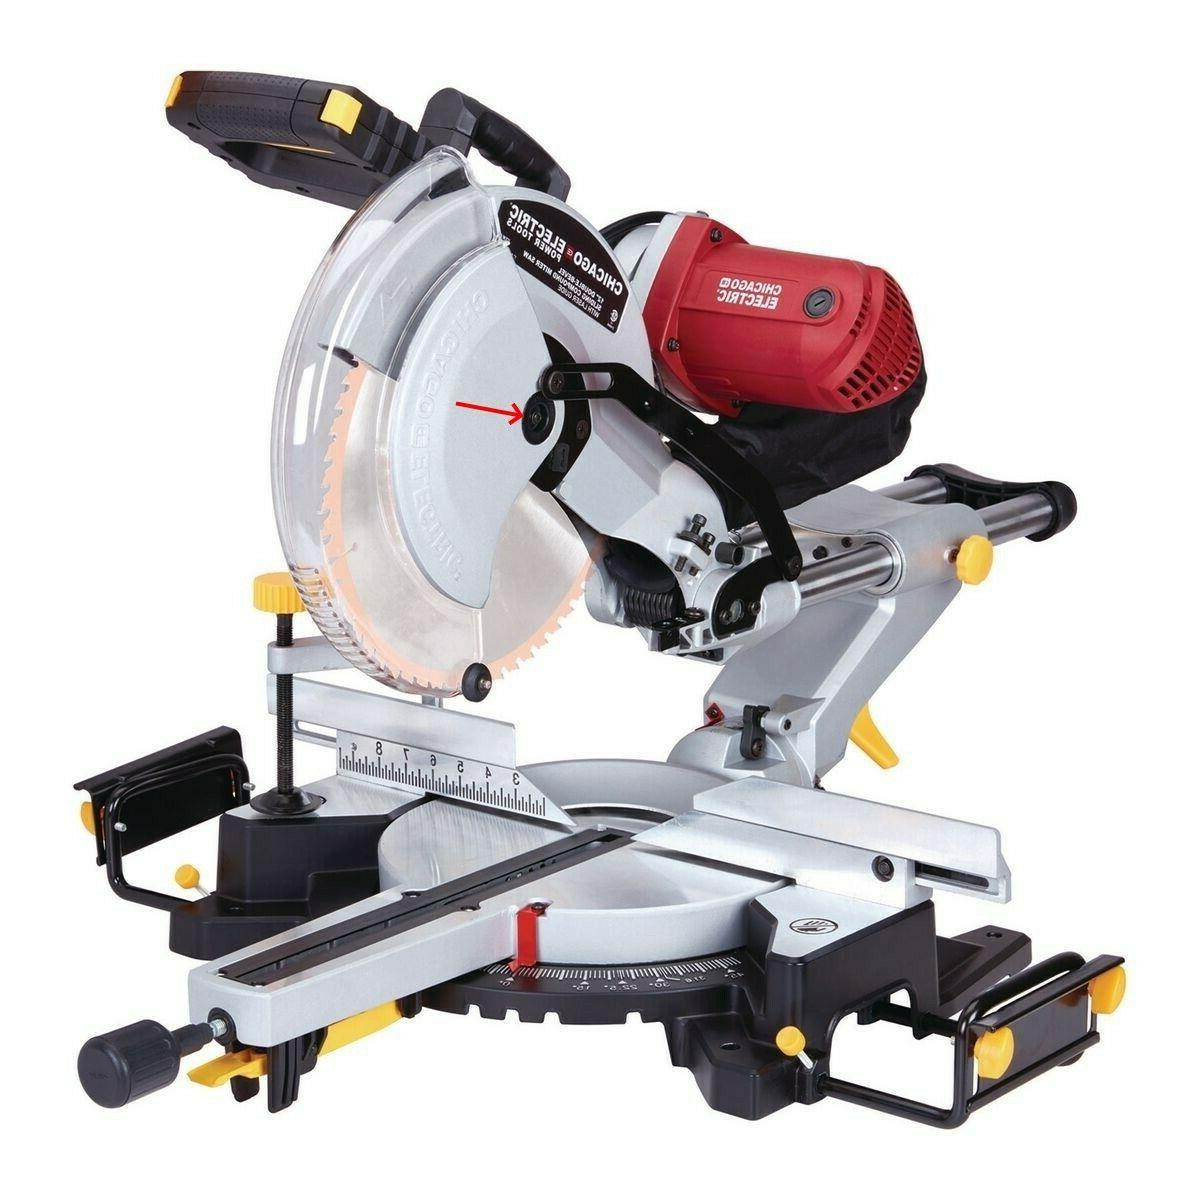 Miter Saw Washer forChicago Electric Miter Saw - Printed